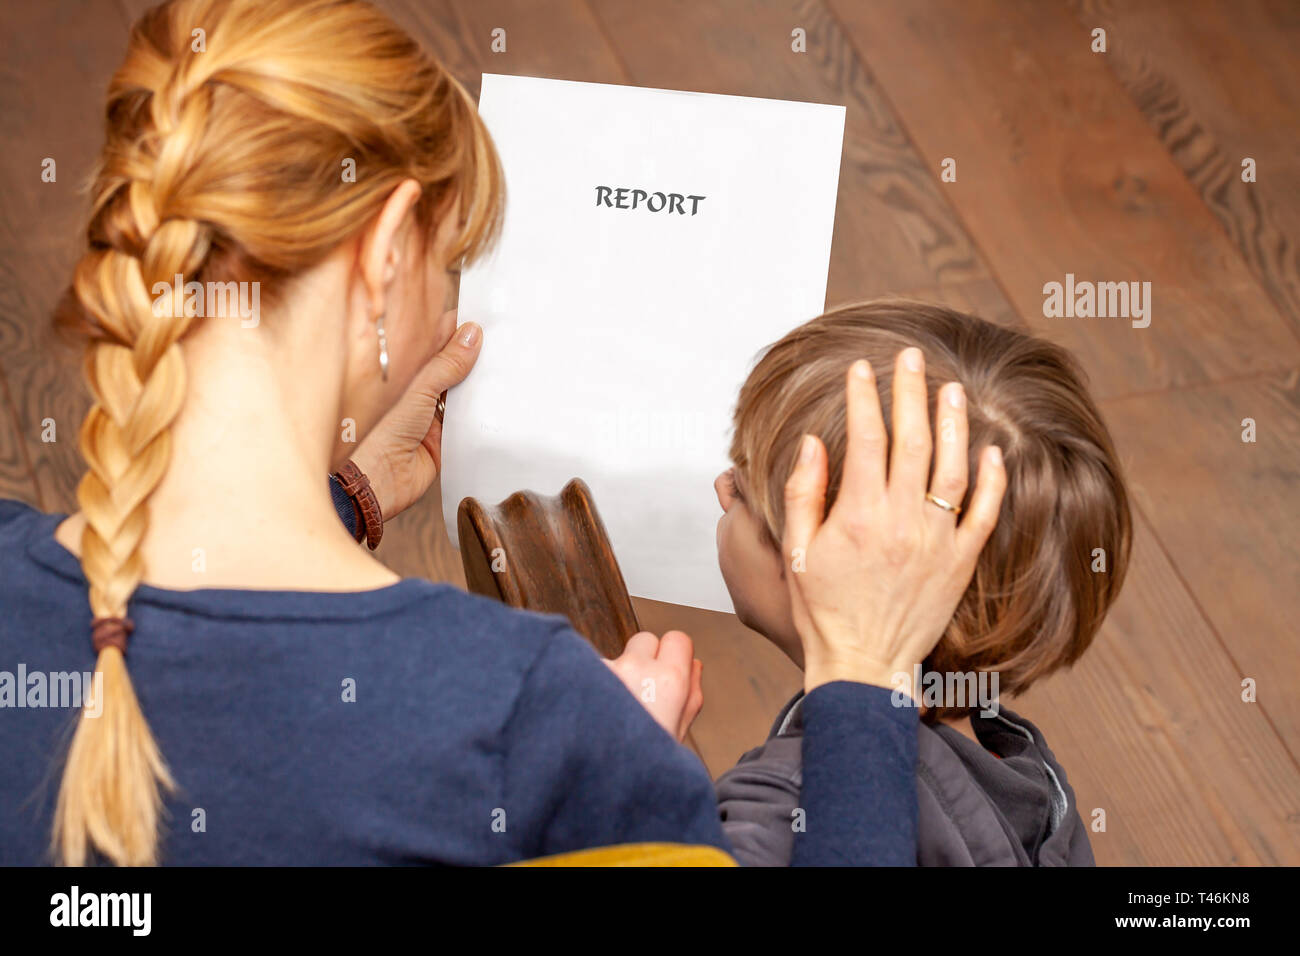 Mother comforting son despite the bad school report. - Stock Image